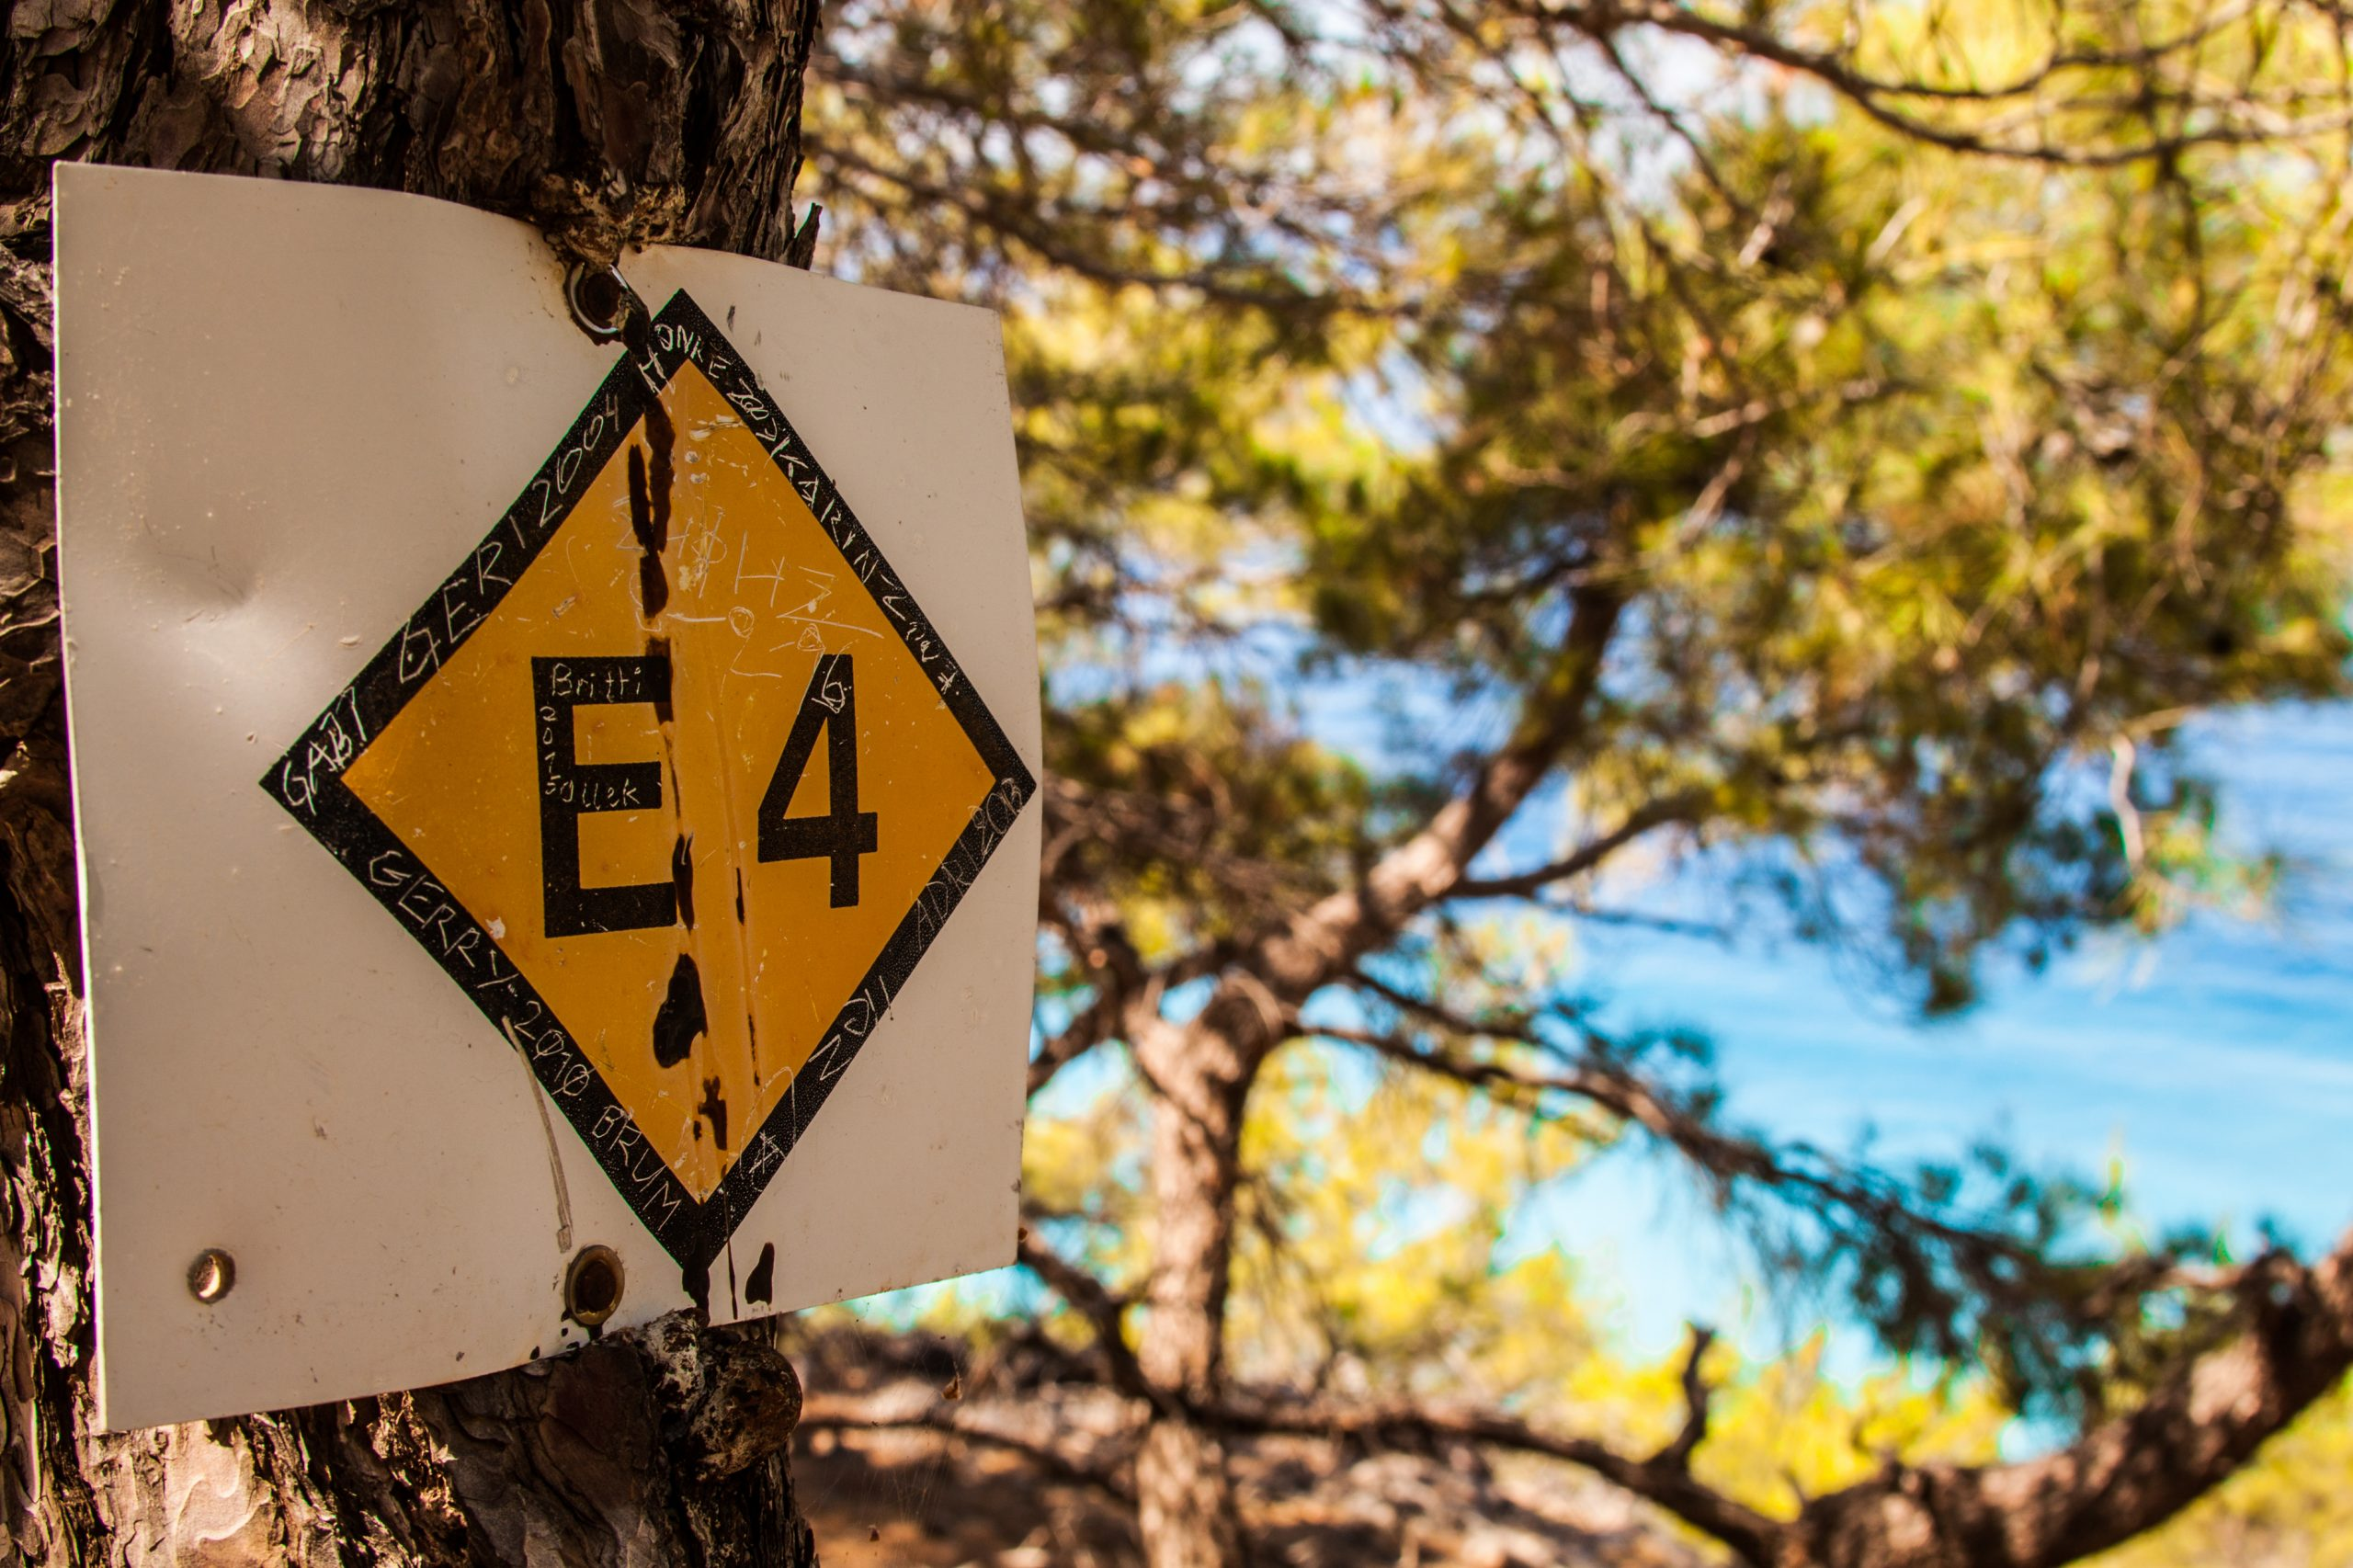 E4 hiking path on the way for sailing